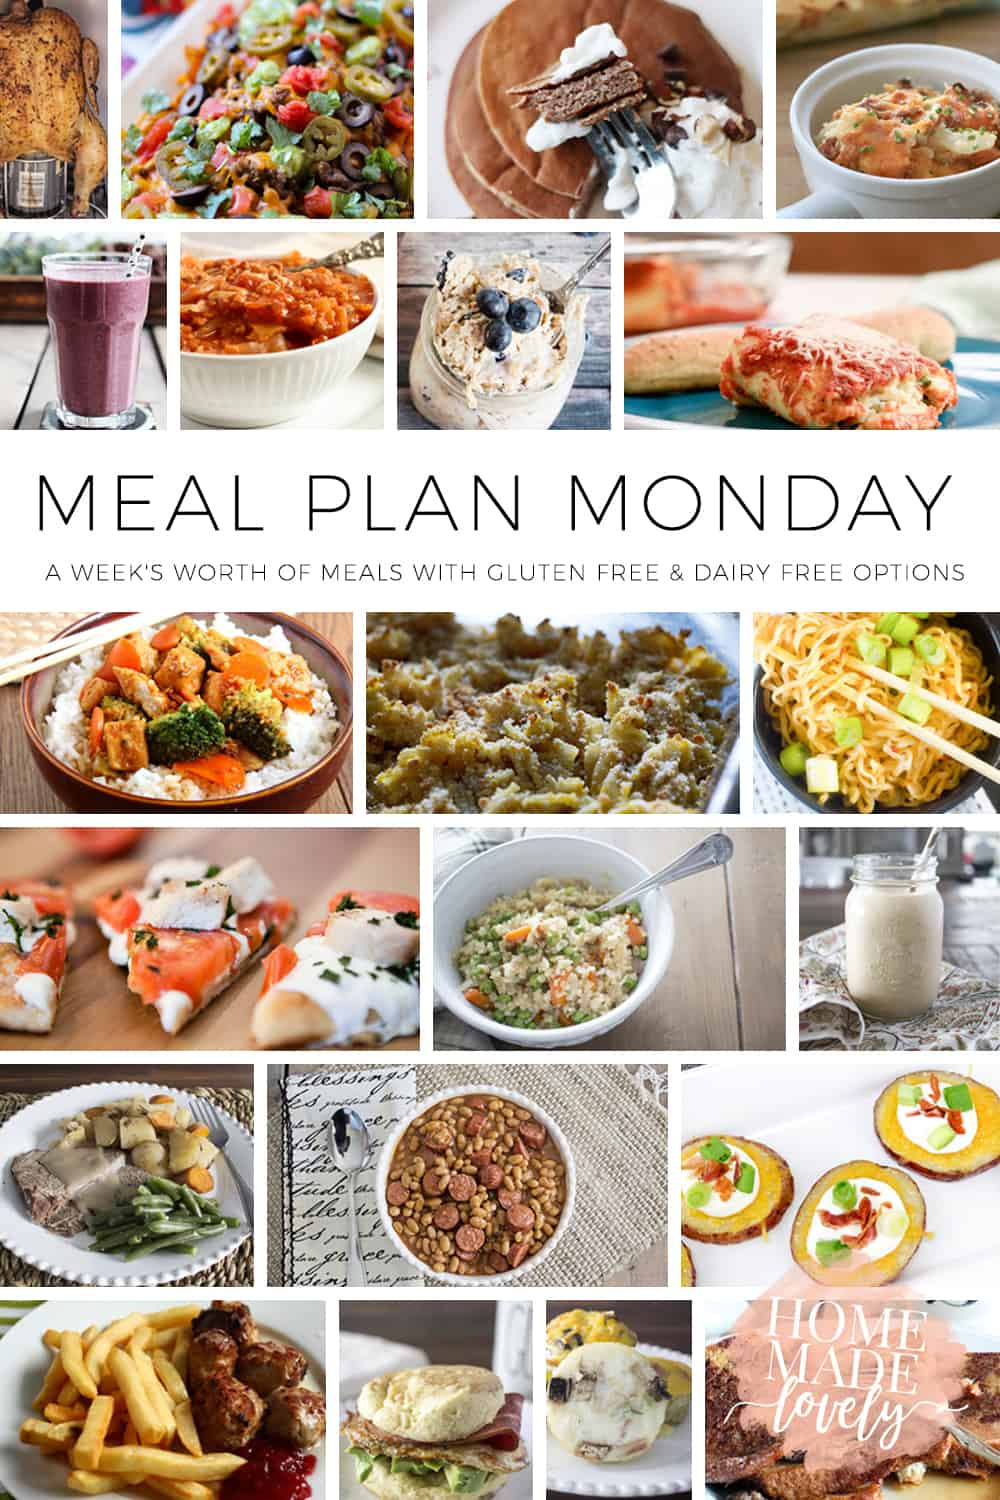 For us, a menu plan is just one more step to an organized home. Here's what we're planning for Meal Plan Monday/Menu Plan Monday this week!